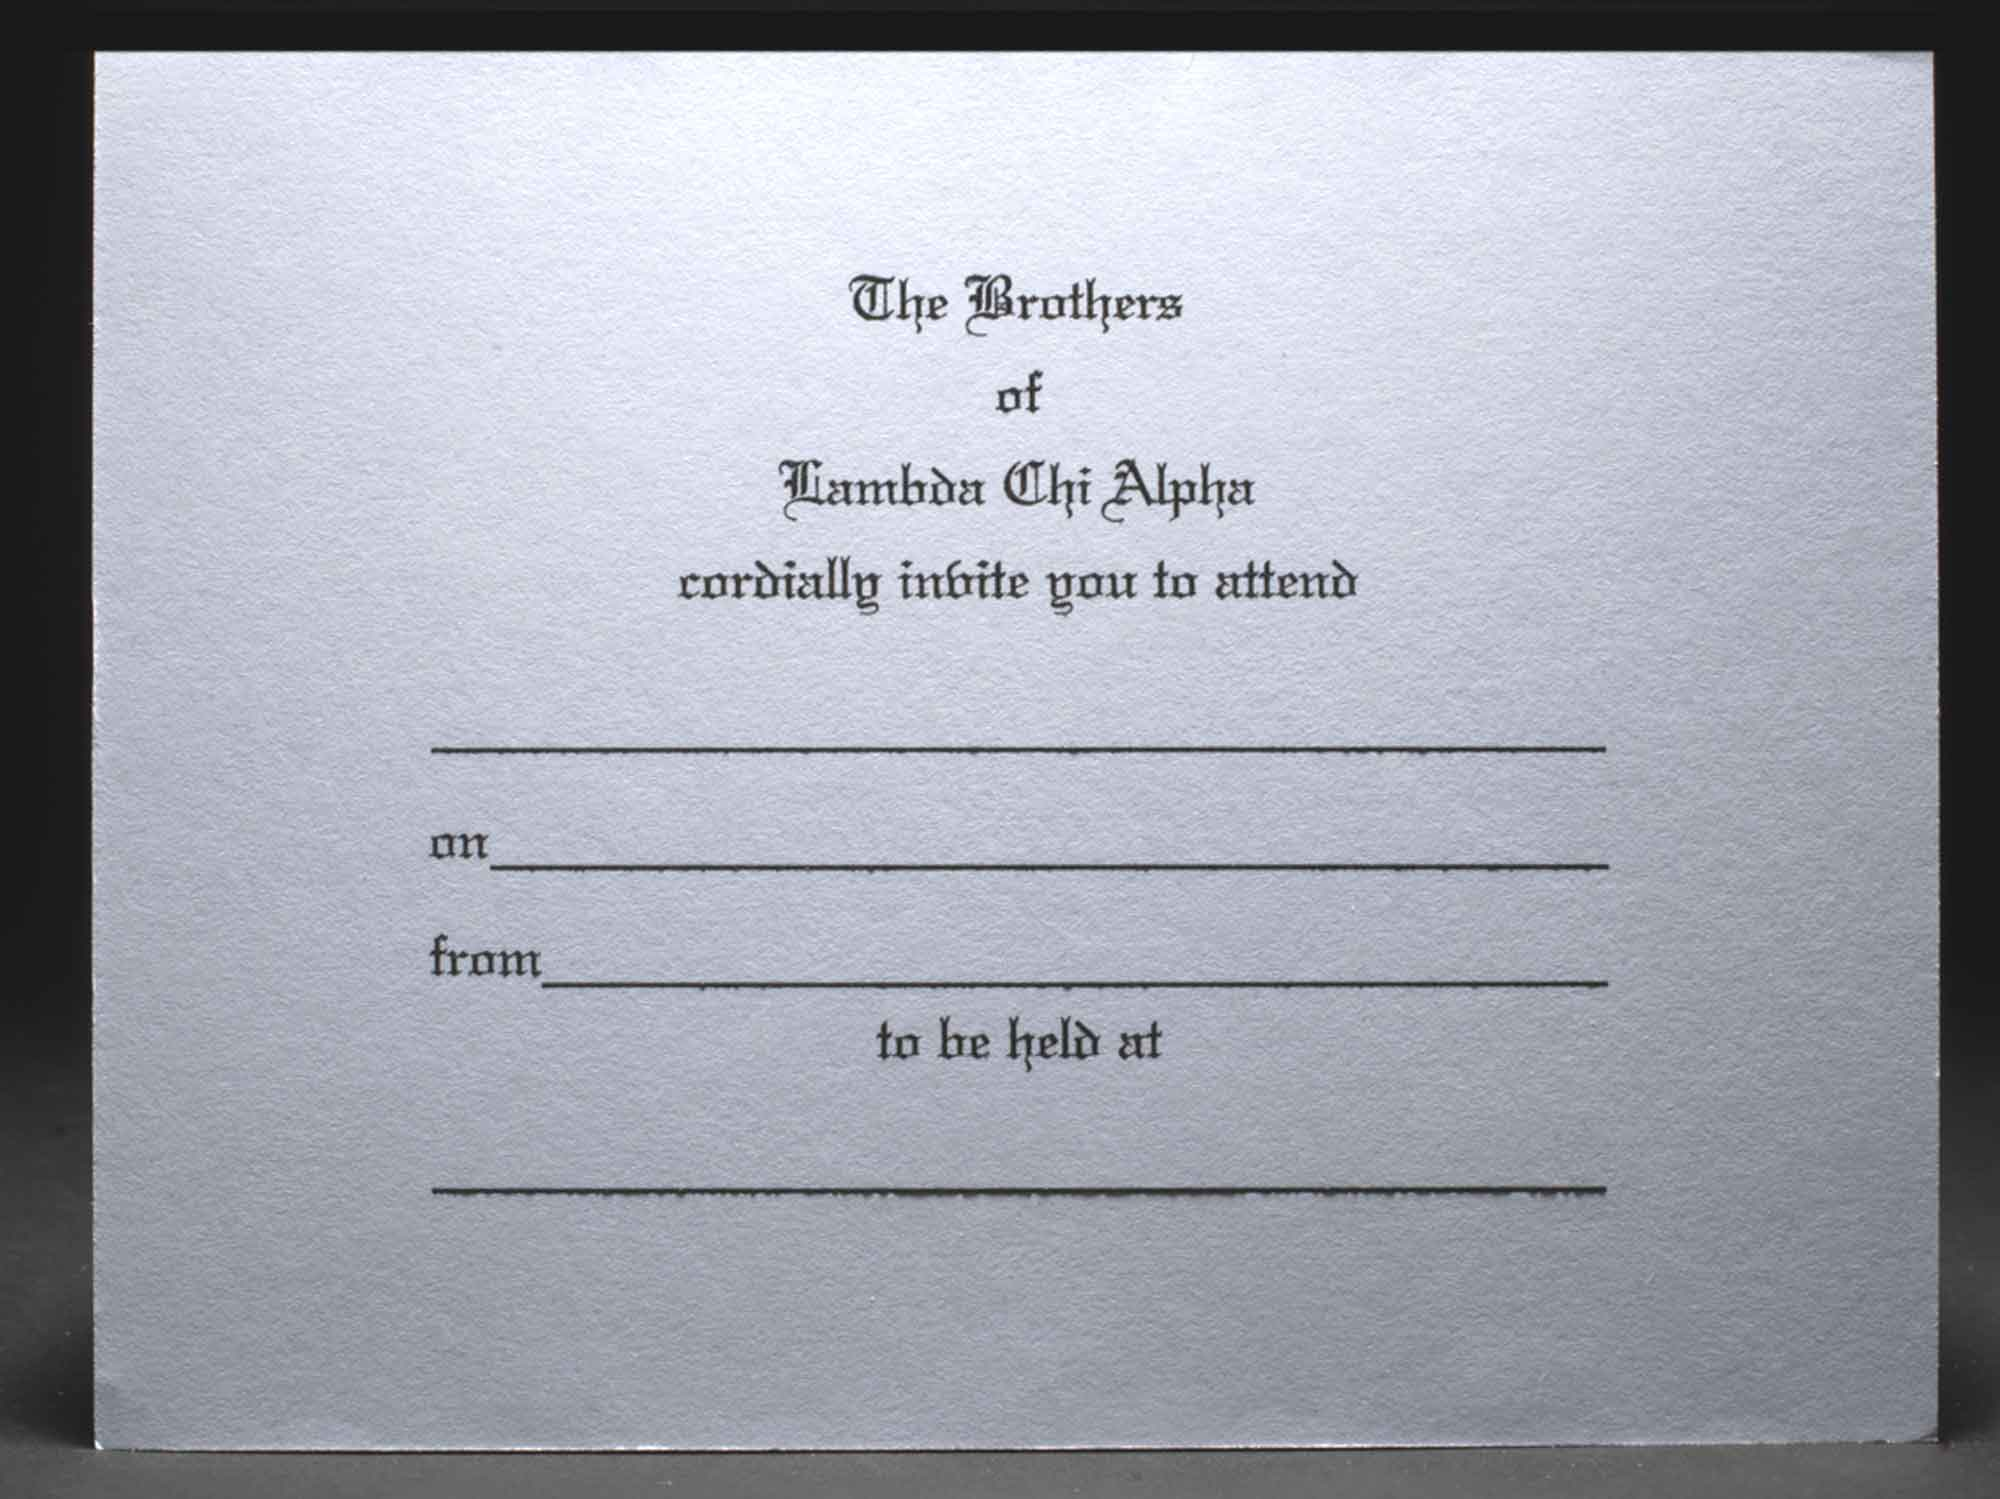 Formal Invitations Lambda Chi Alpha 2